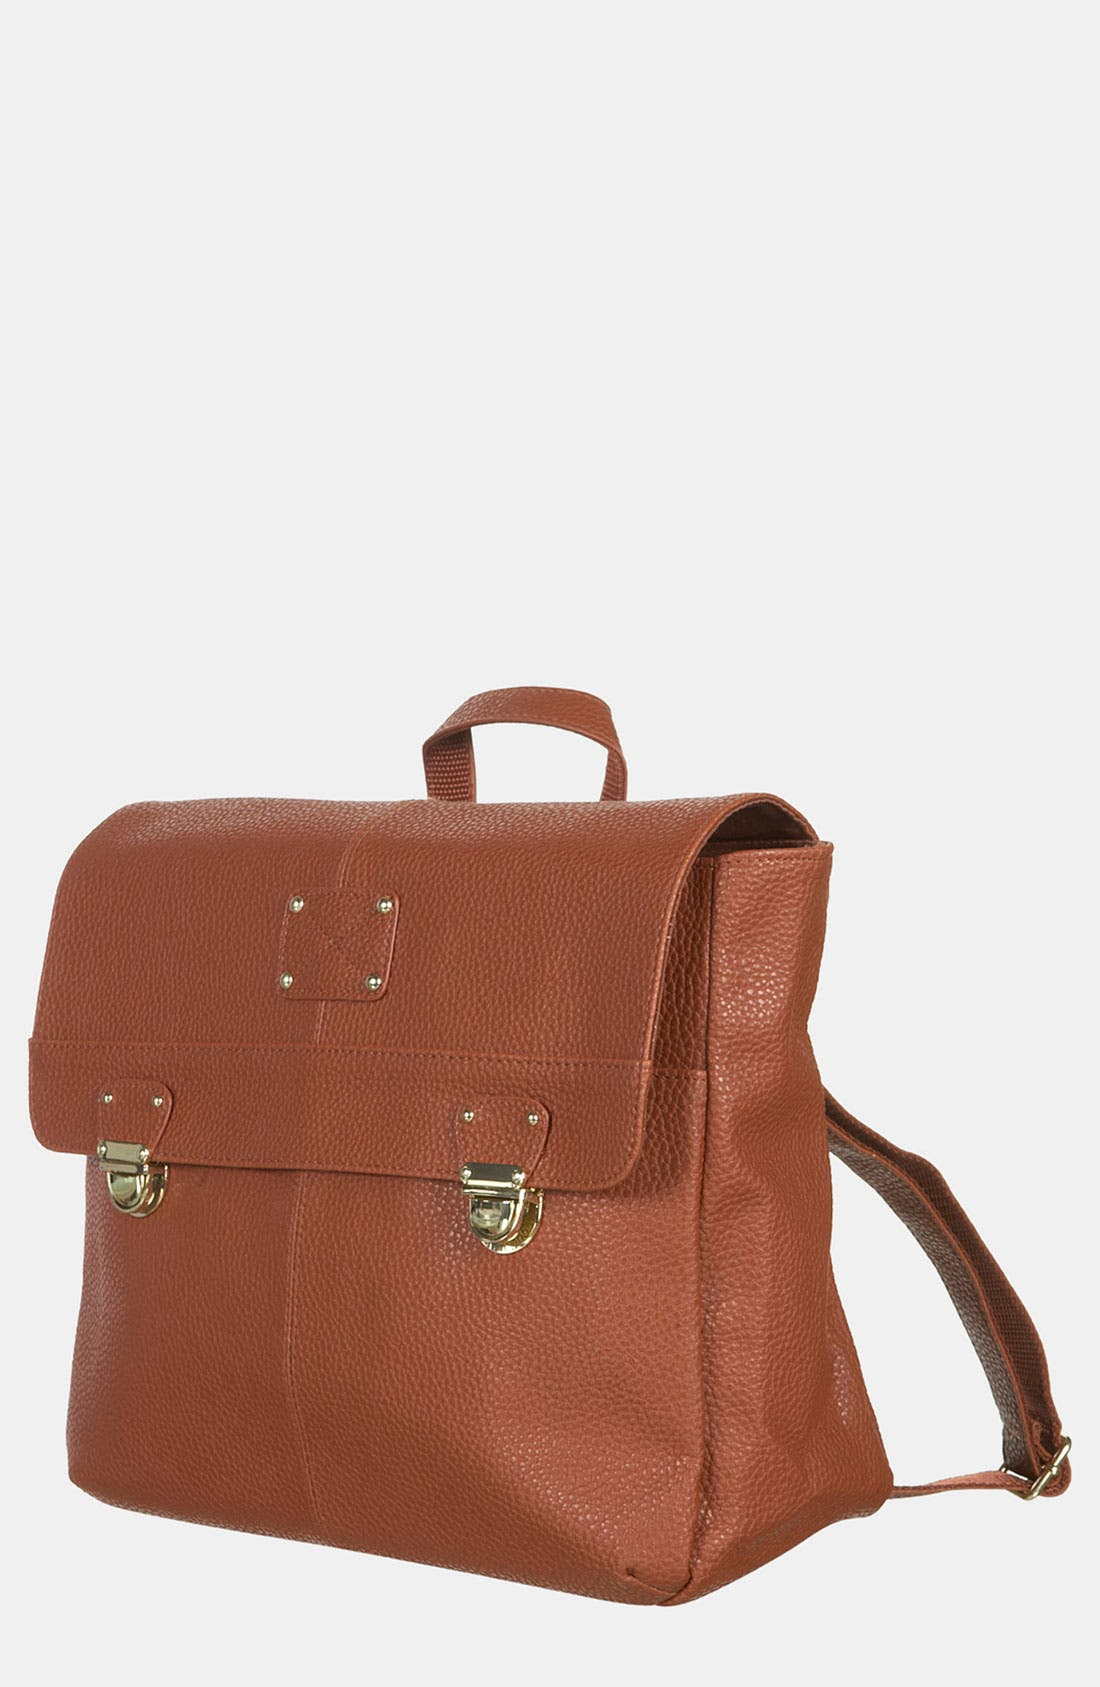 Main Image - Topshop Push Lock Satchel